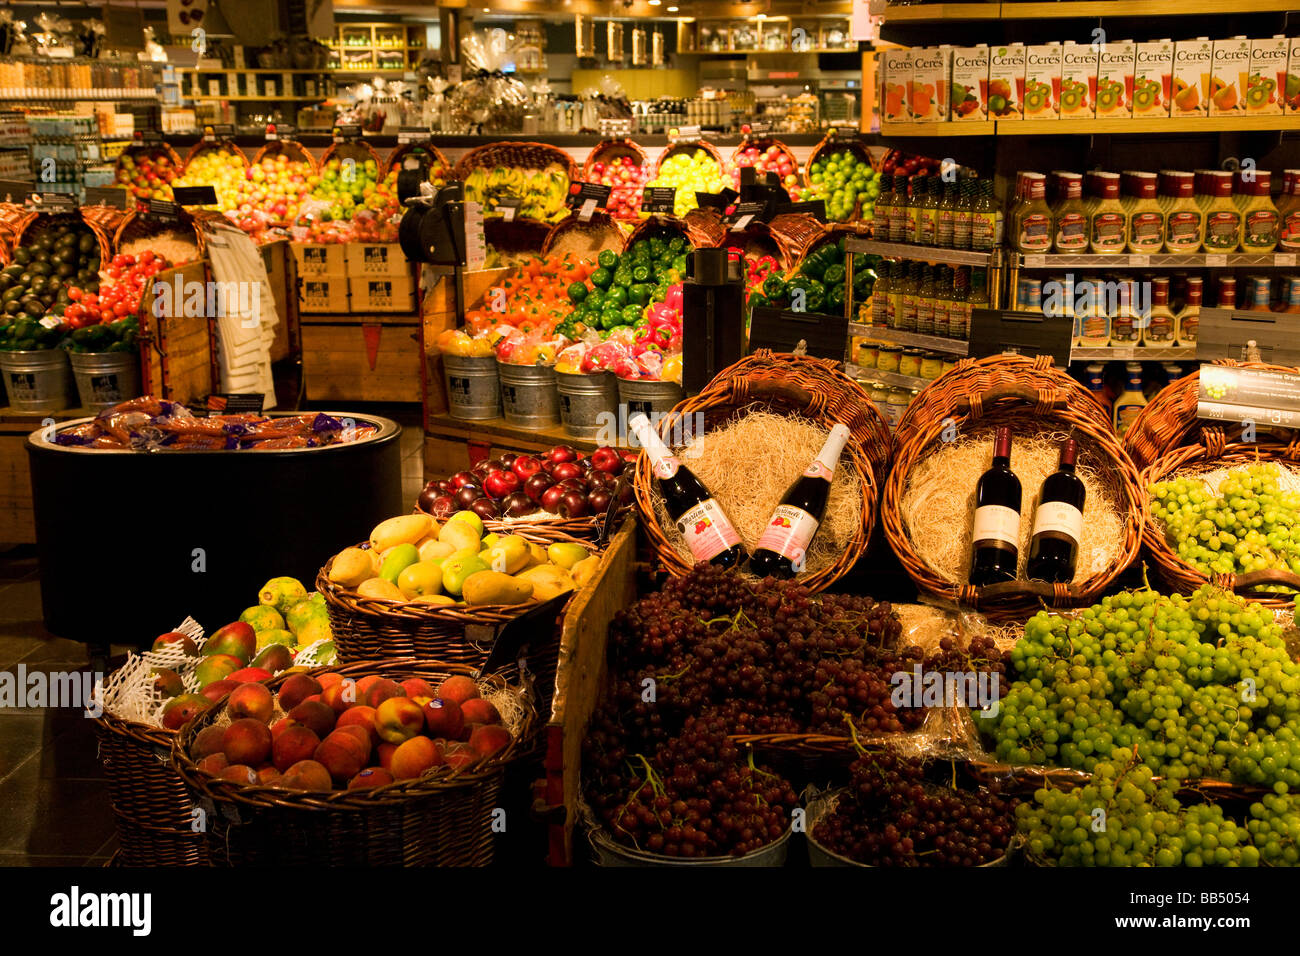 The grocery store Urban Fare in the town that will host the 2010 Winter Olympics Vancouver British Columbia Vancouver - Stock Image